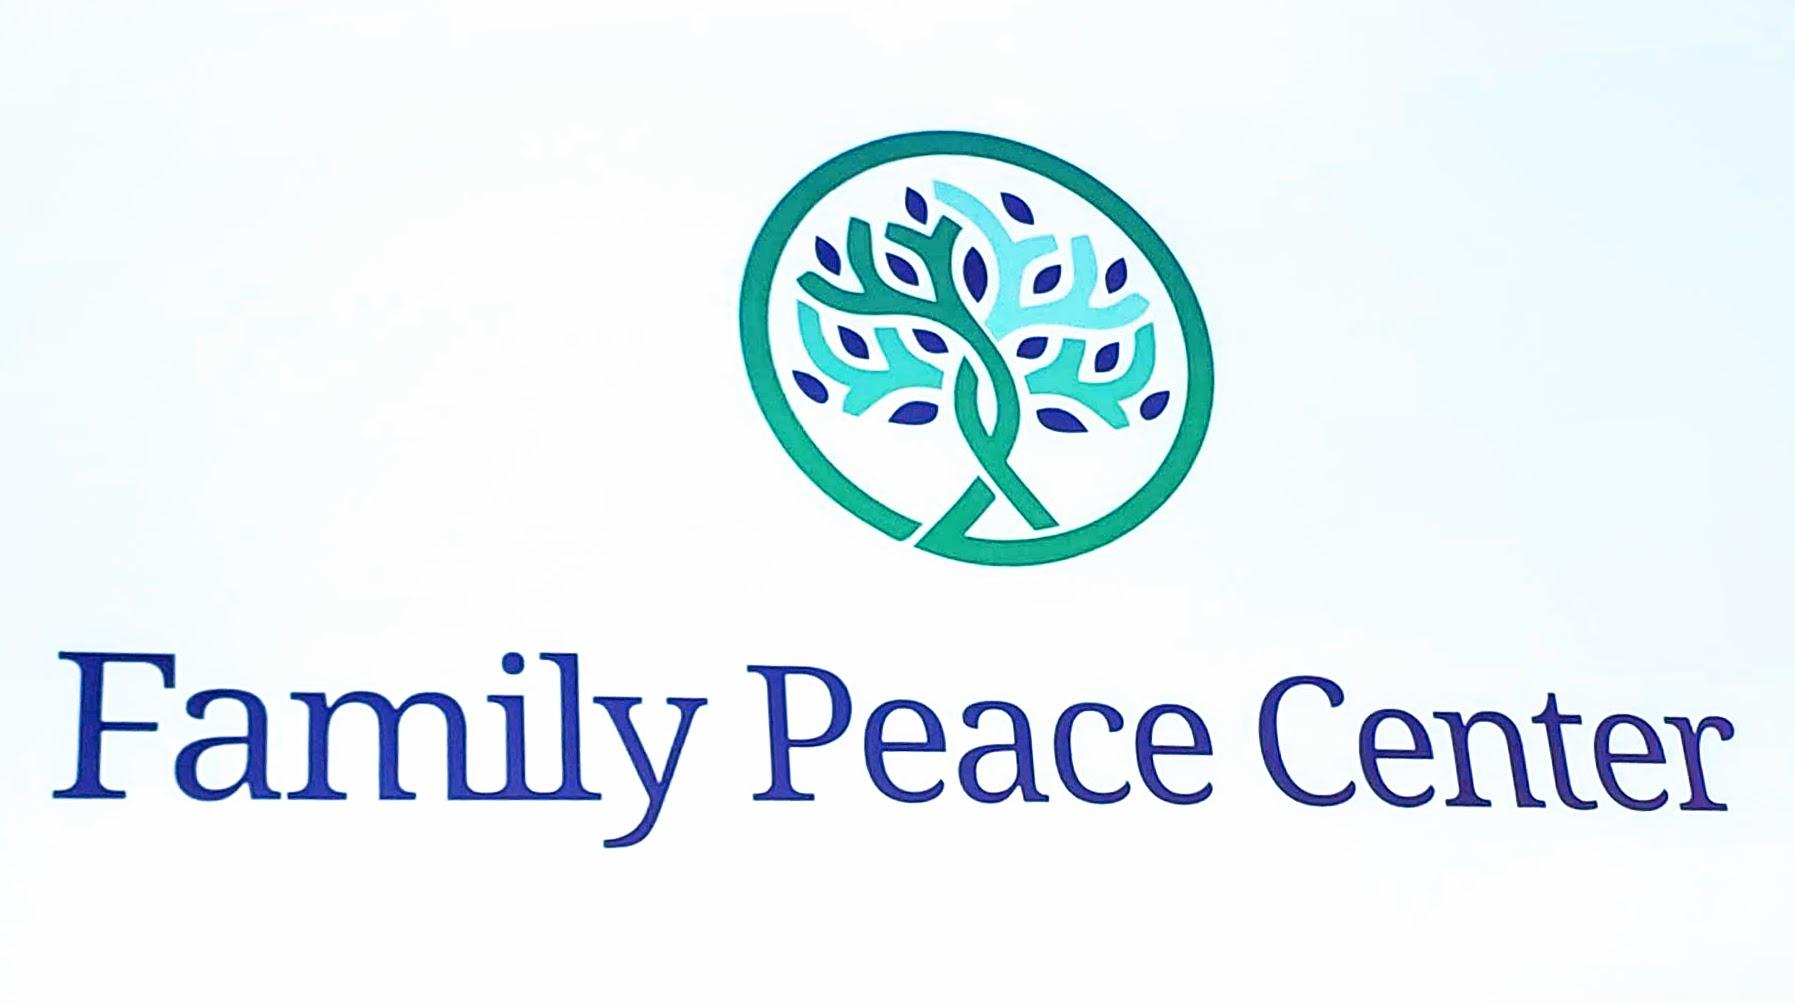 Rockford Moving Forward On 'Family Peace Center' | WNIJ and WNIU